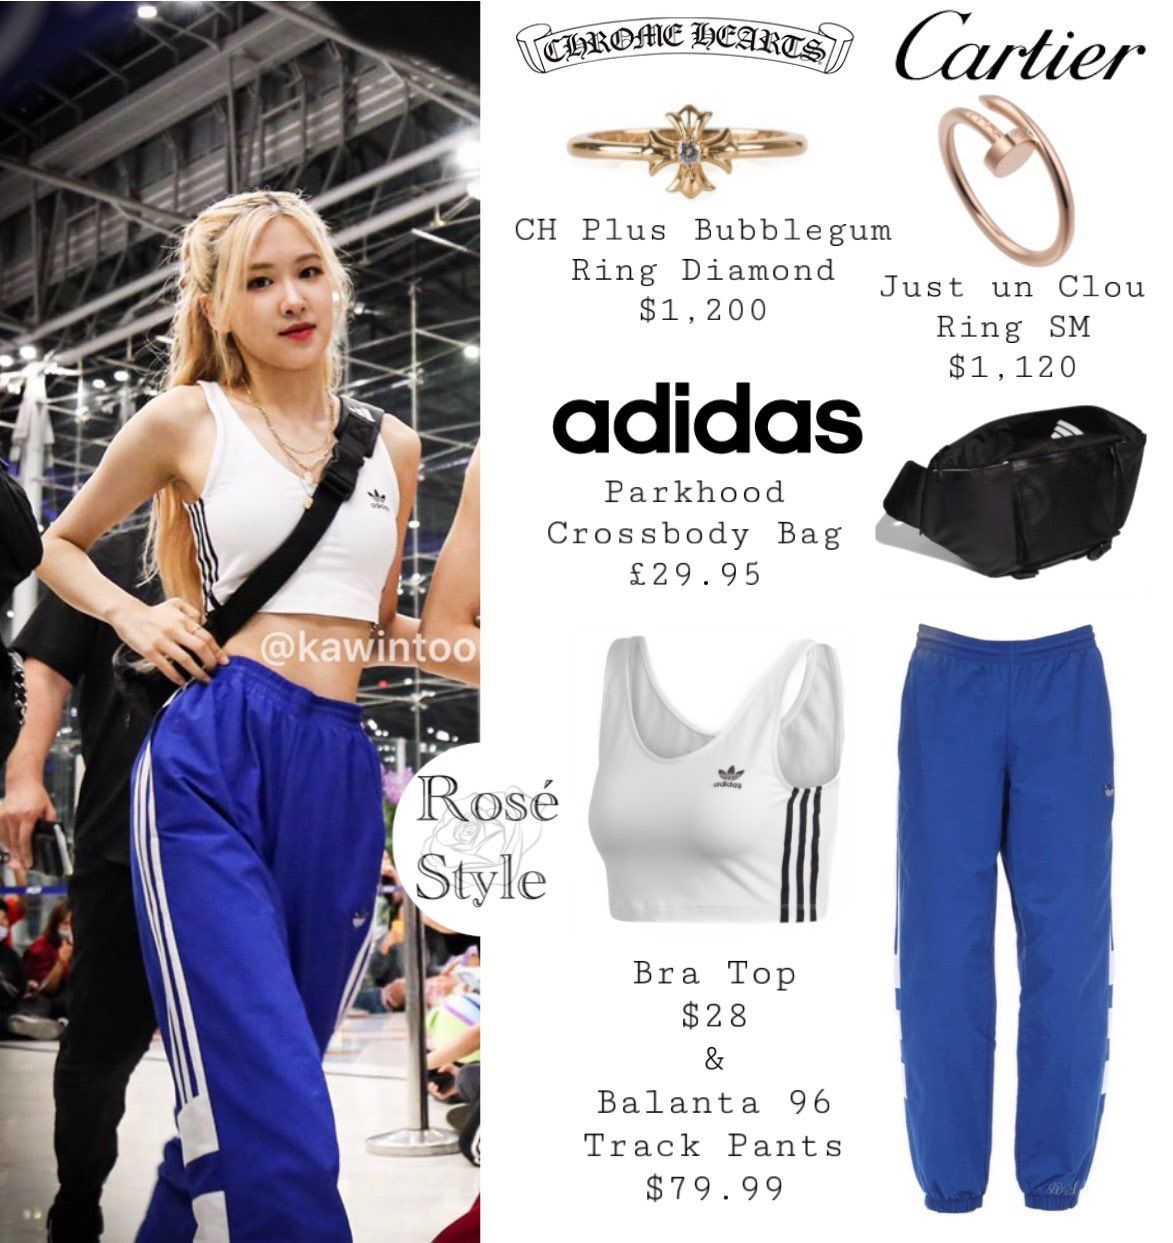 Varios Conejo Sin valor  Pin by roseanne 🥀 on Outlook | Kpop outfits, Korean outfits, Kpop fashion  outfits